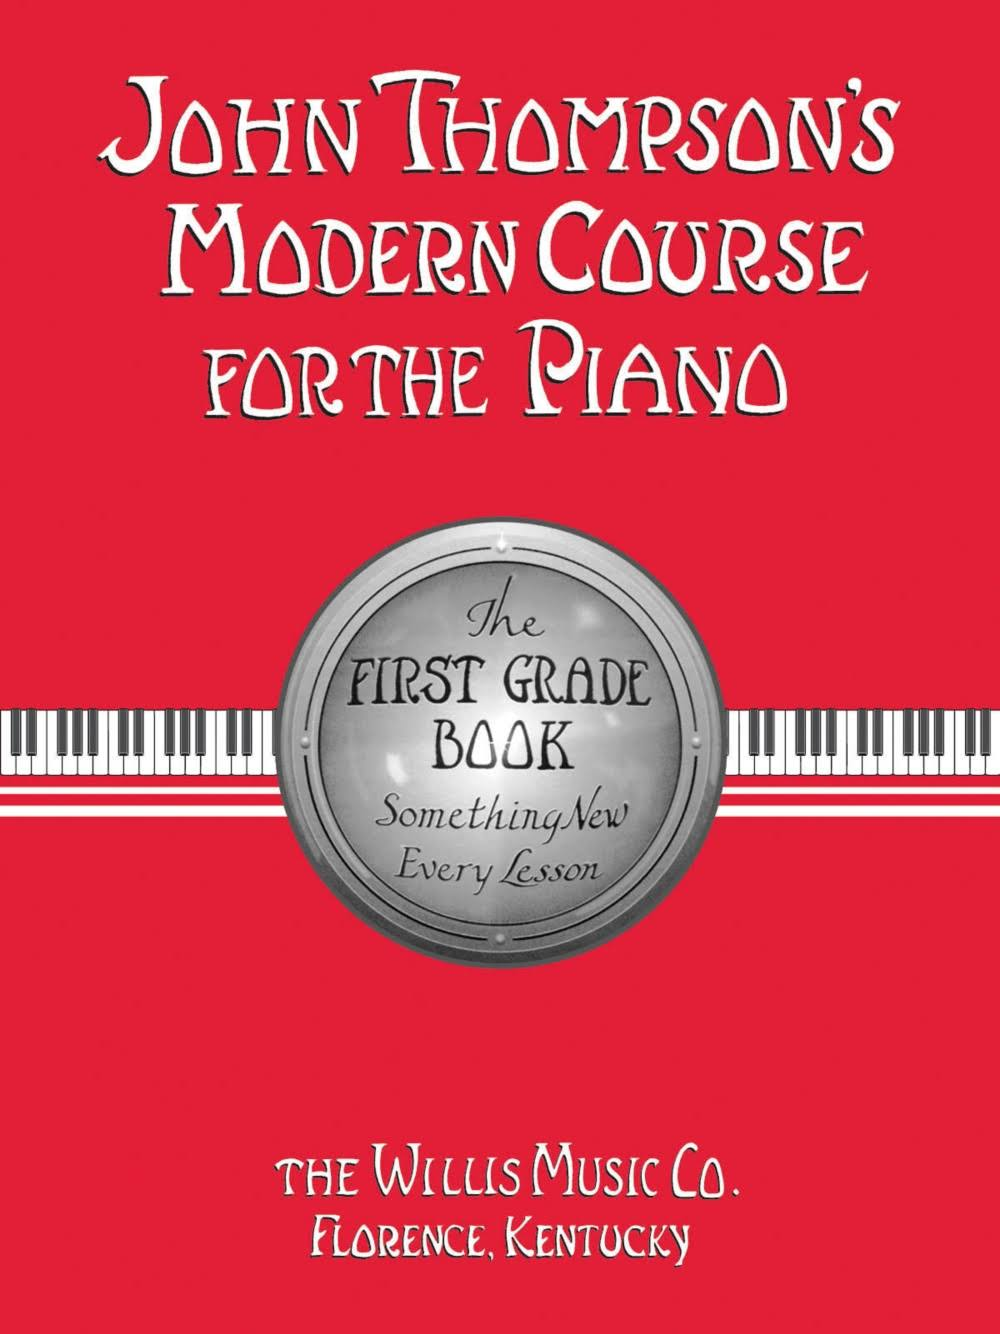 John Thompson's Modern Course for the Piano: First Grade Book - John Thompson